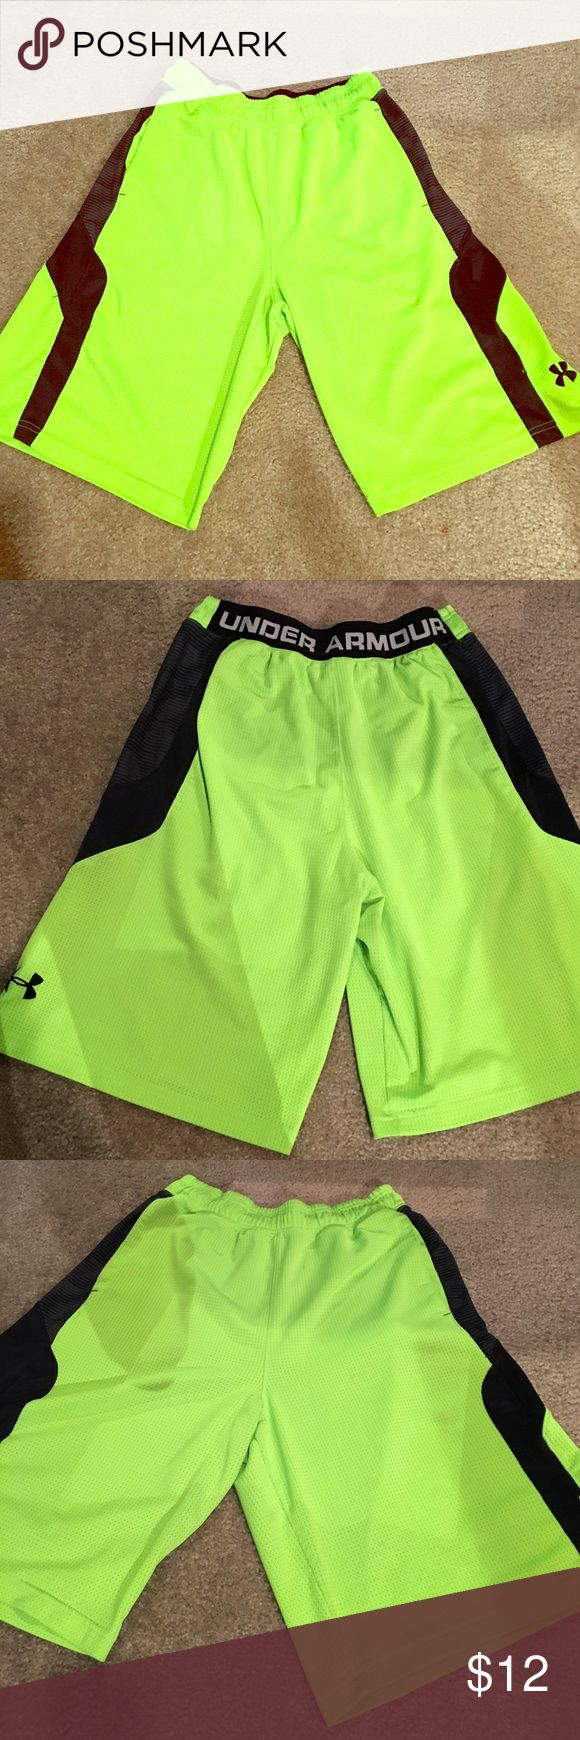 Men's Large Neon Green Under Armour BBall Shorts! Under Armour Men's Large BBall shorts. Neon Green with black writing. Wicked comfy and soft. Small stain and hole on left leg, can be seen in last pic. Under Armour Shorts Athletic